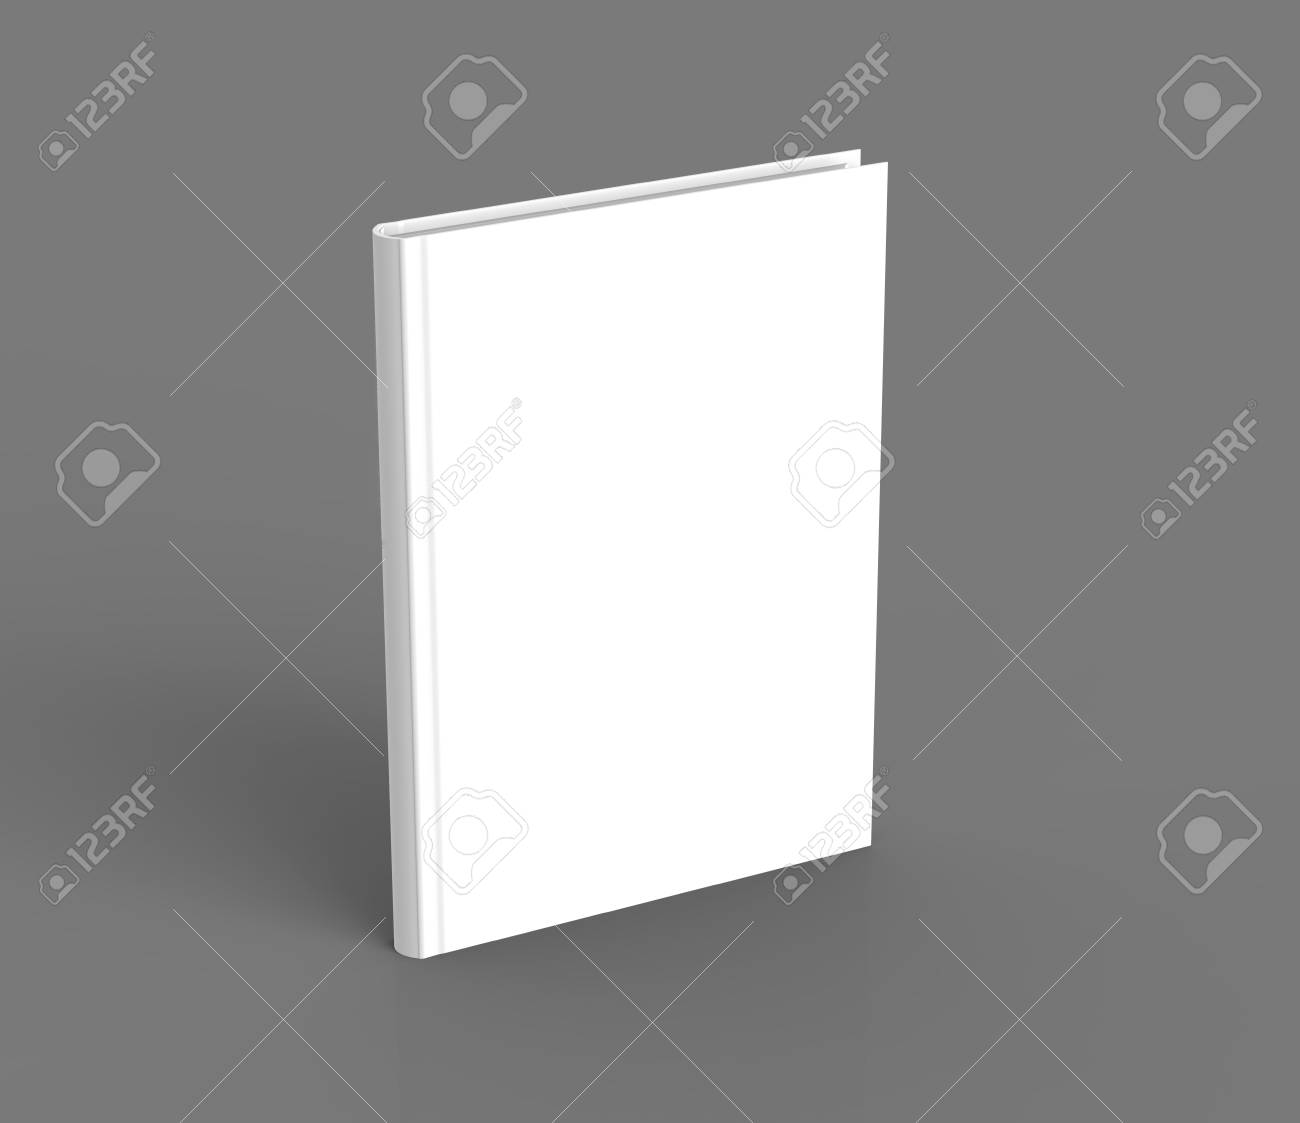 hardcover book template blank standing book mockup for design